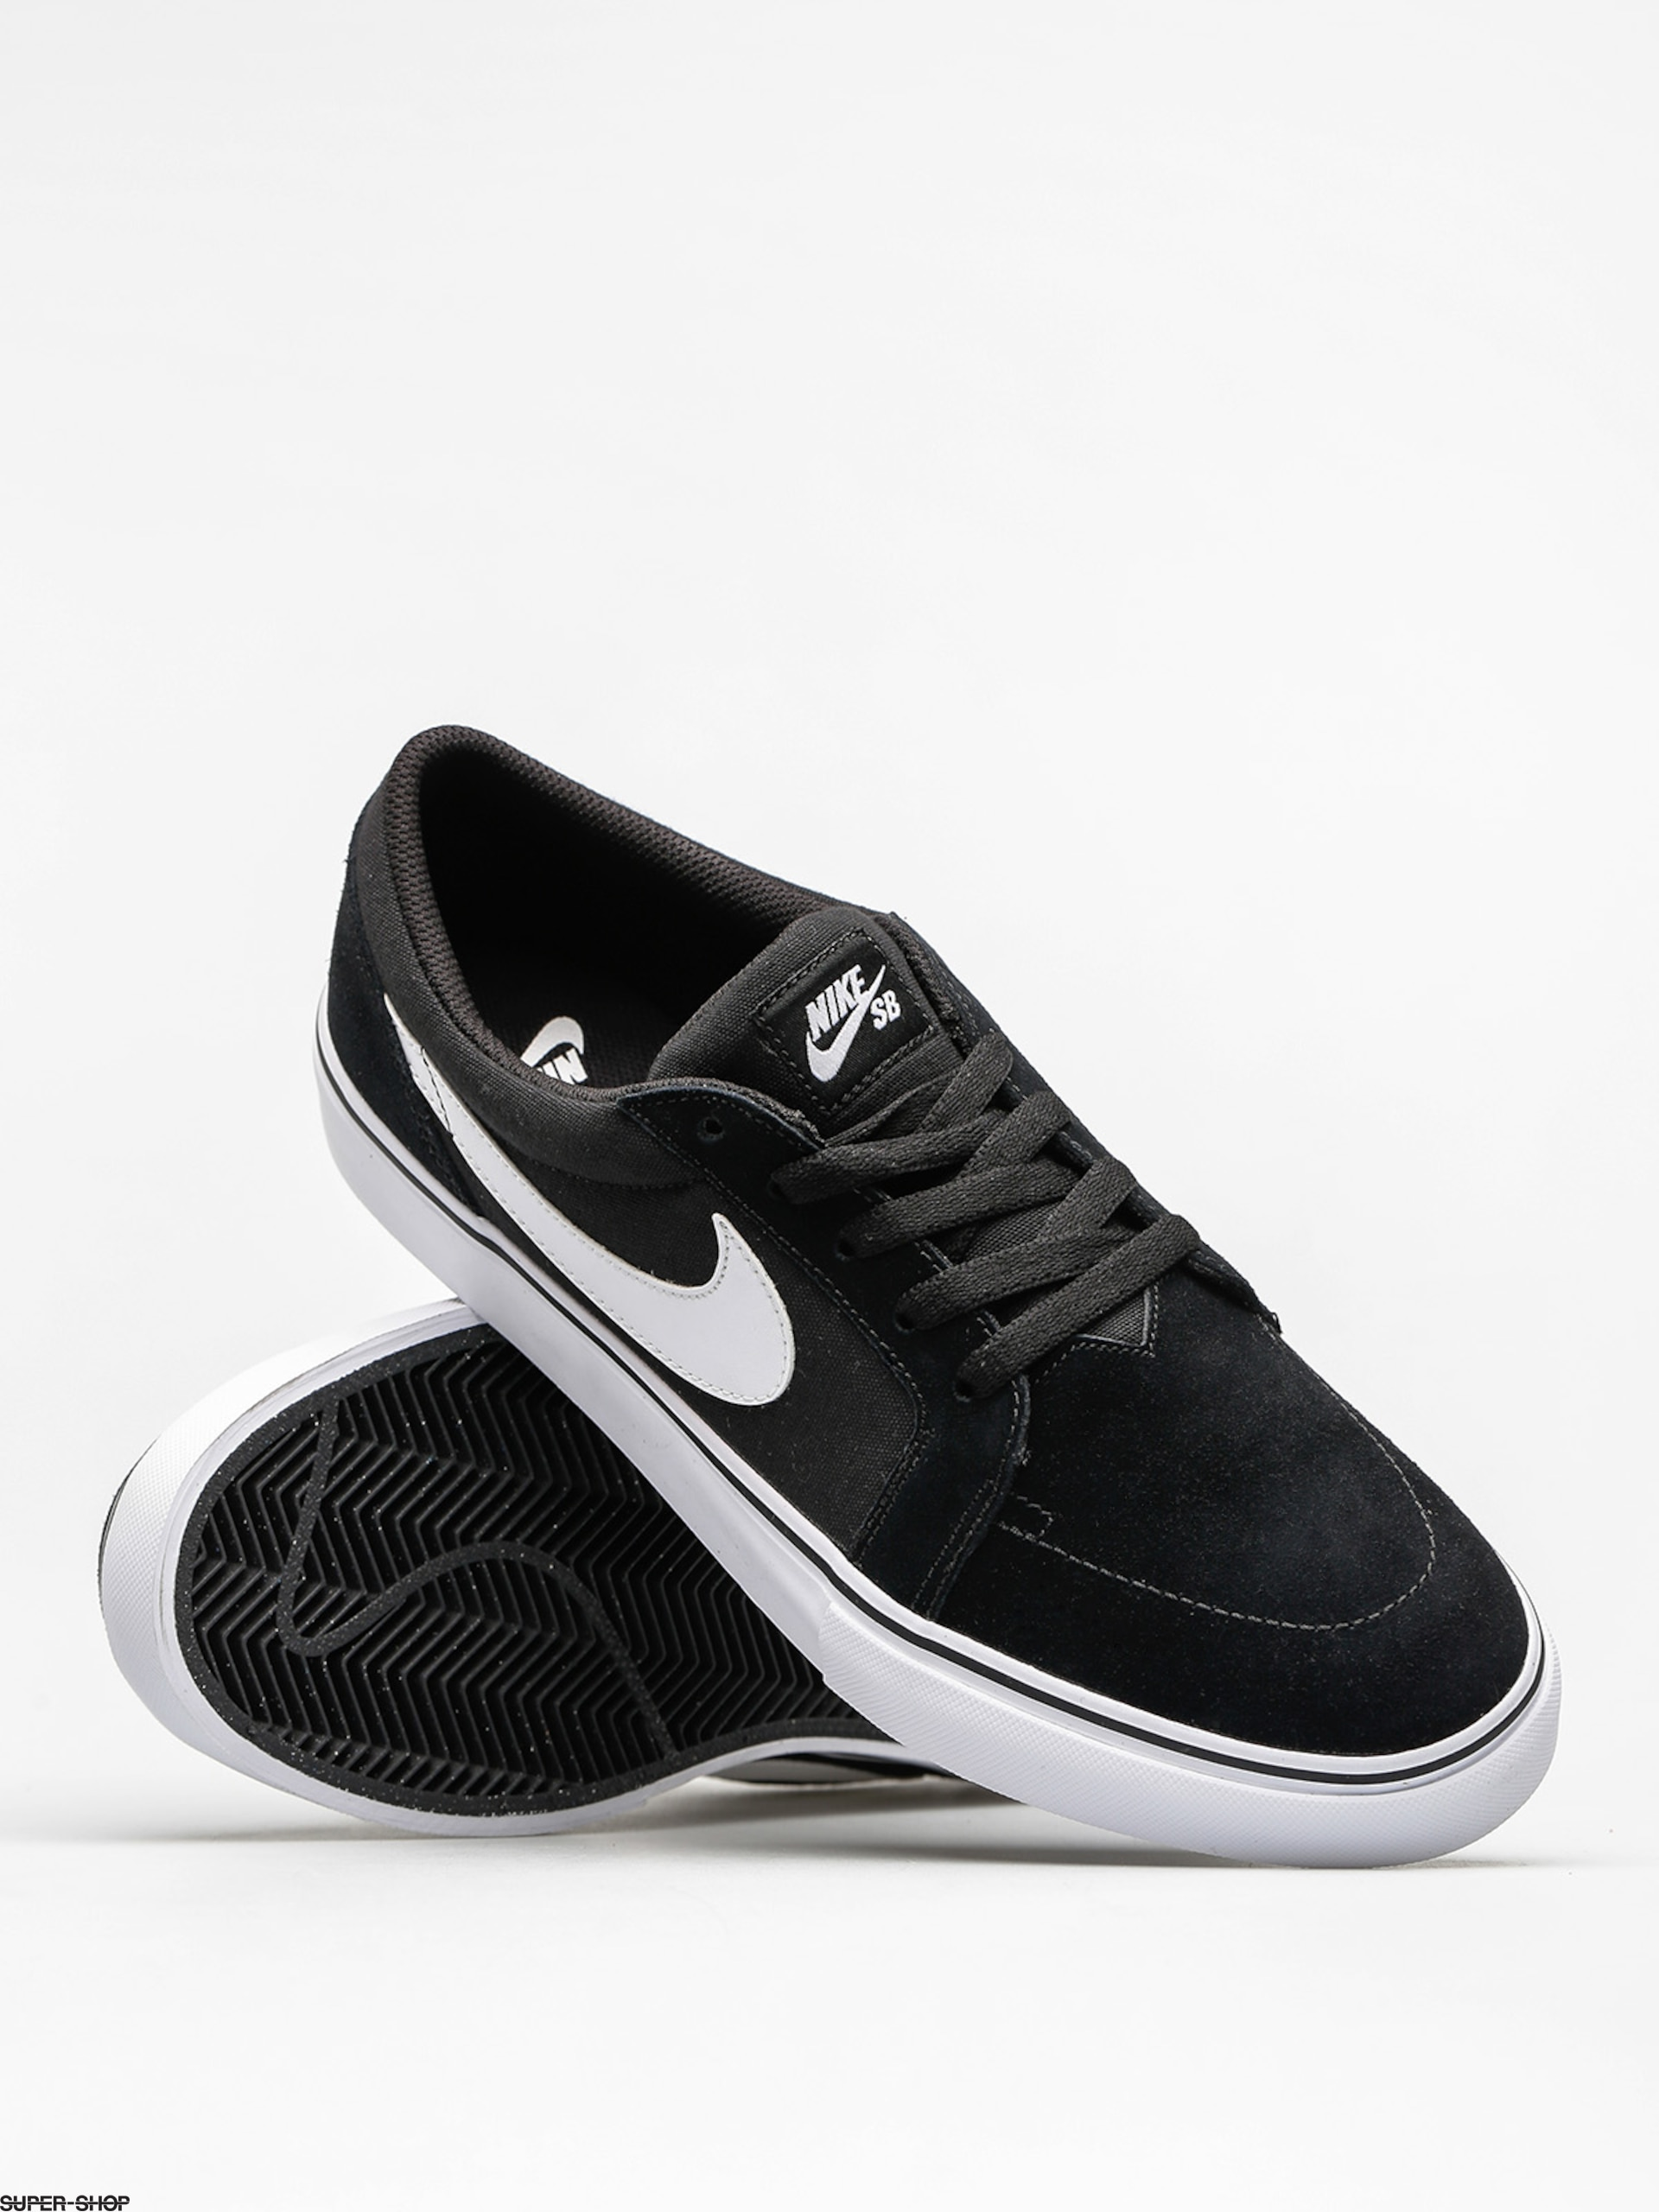 Nike SB Satire II Shoes BlackWhite